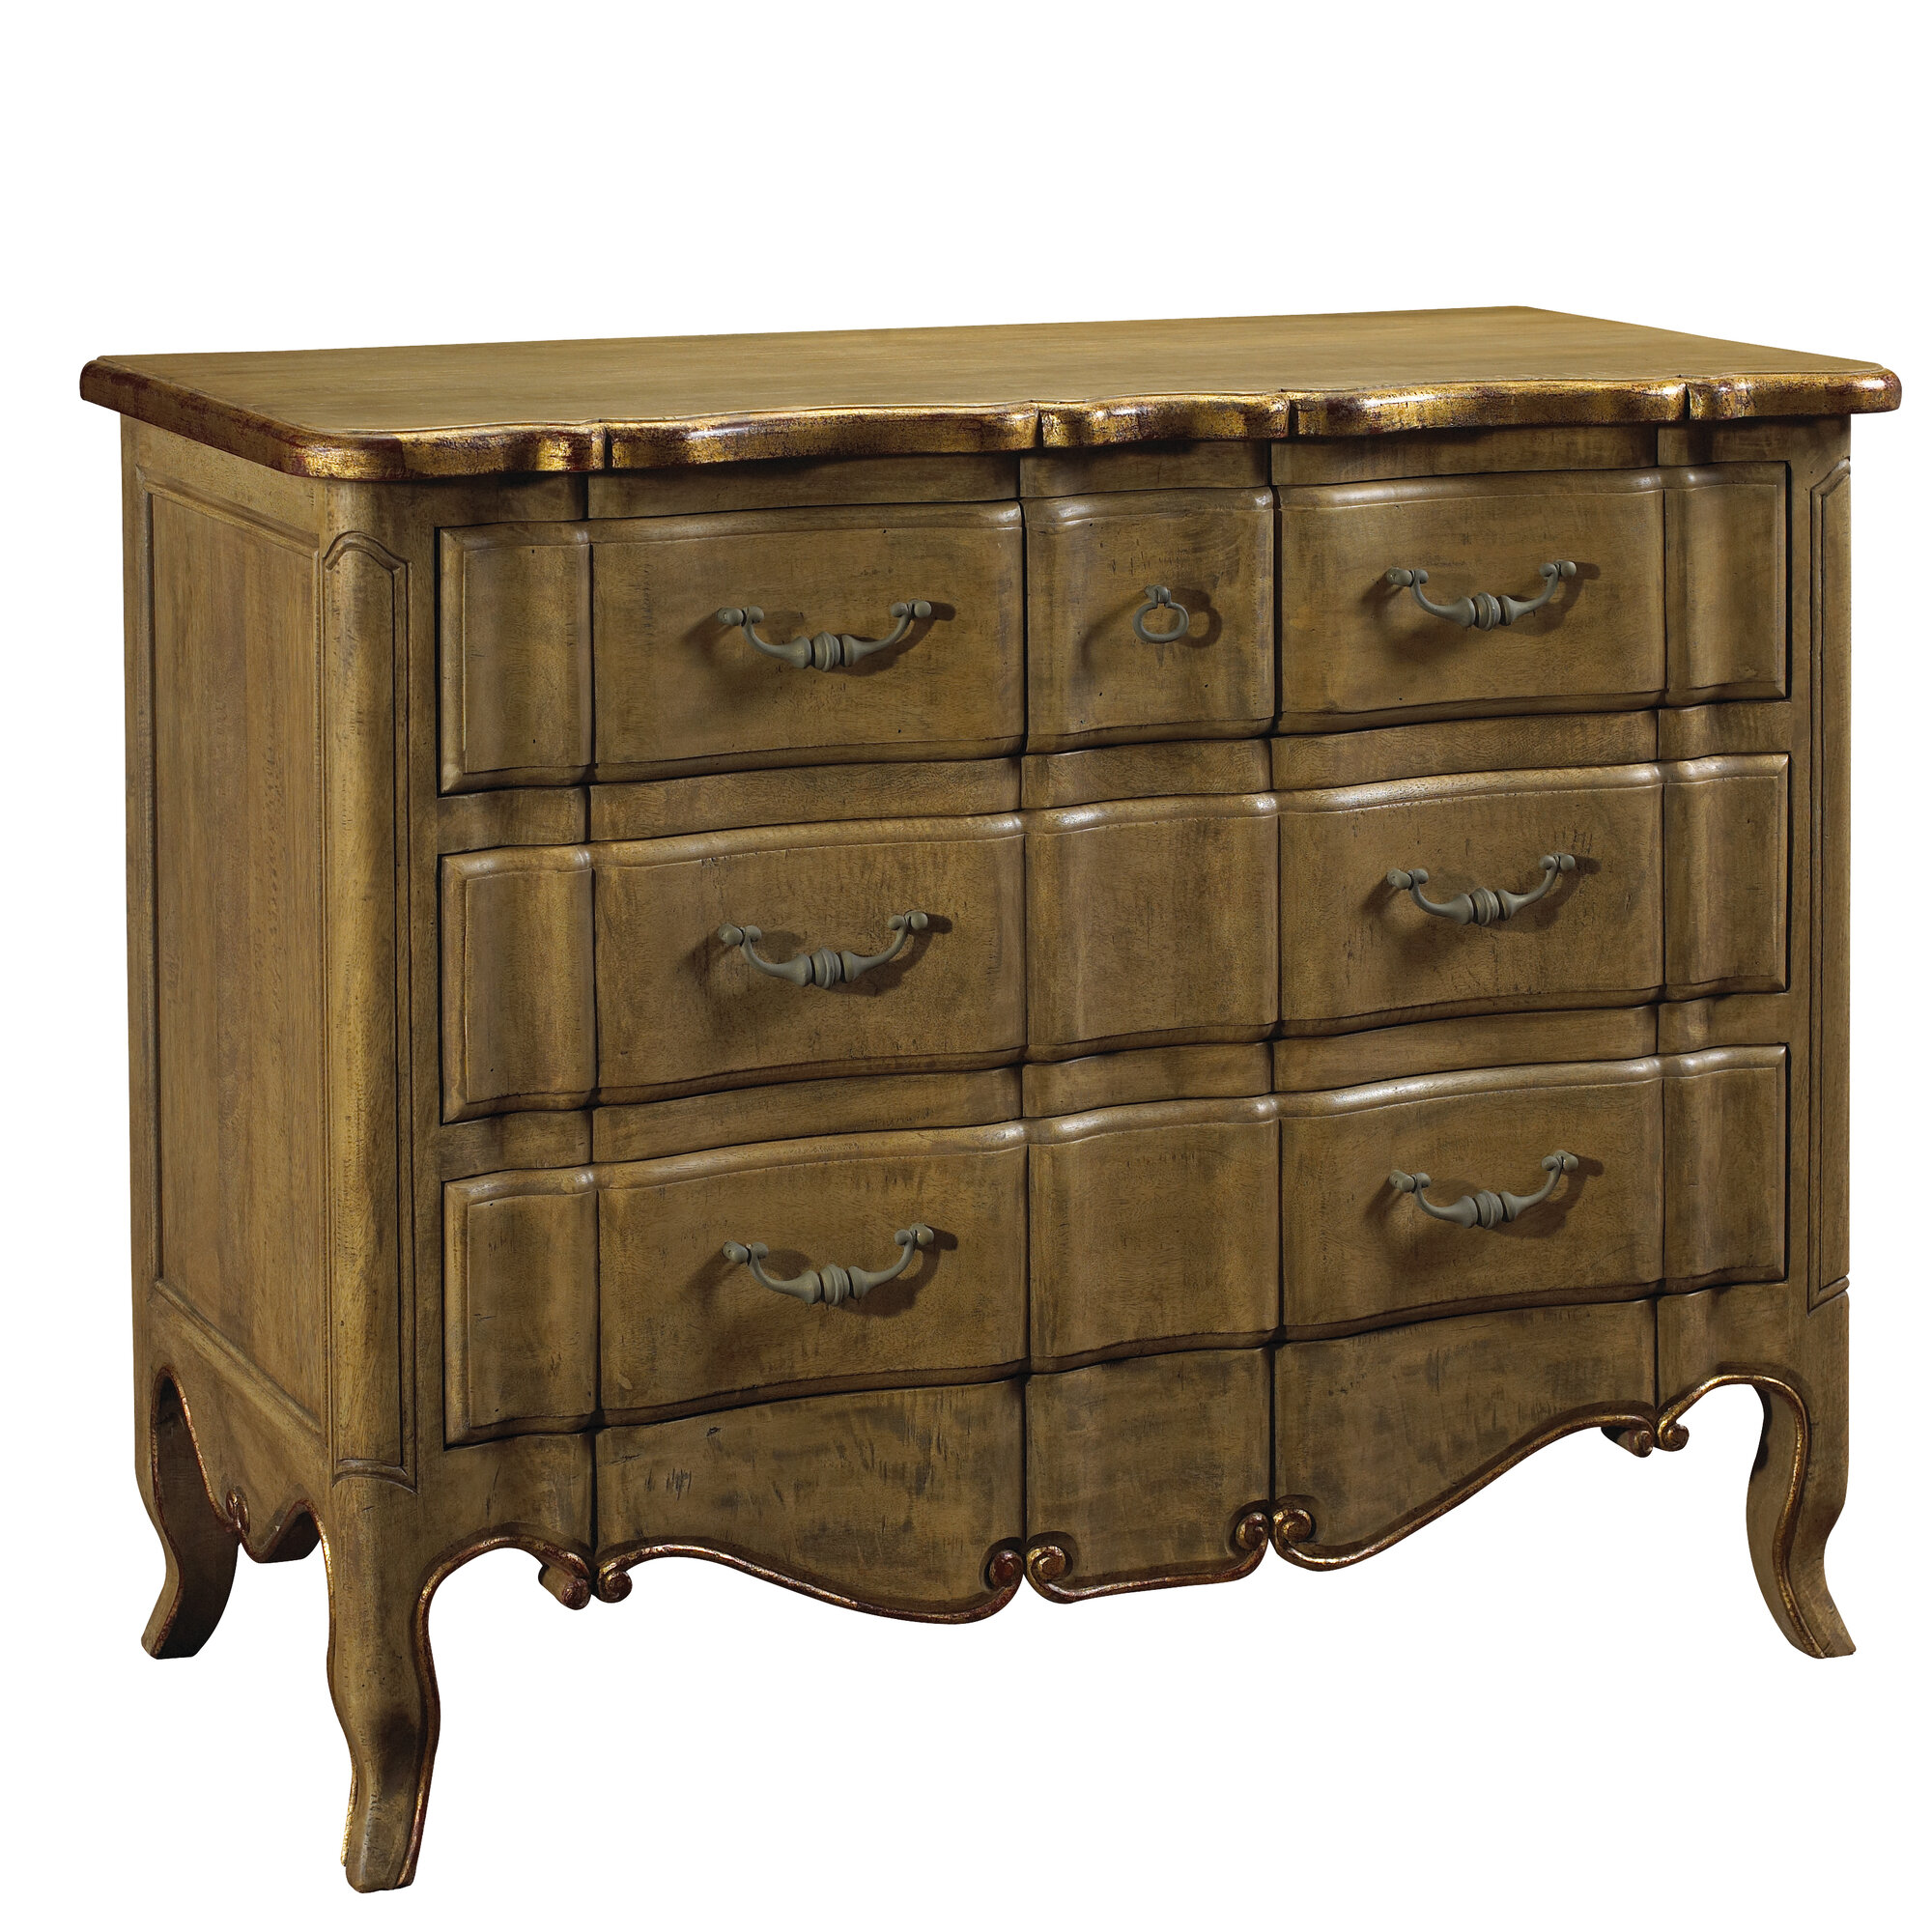 French heritage modernly classic commode chest ebay - Commode classique ...